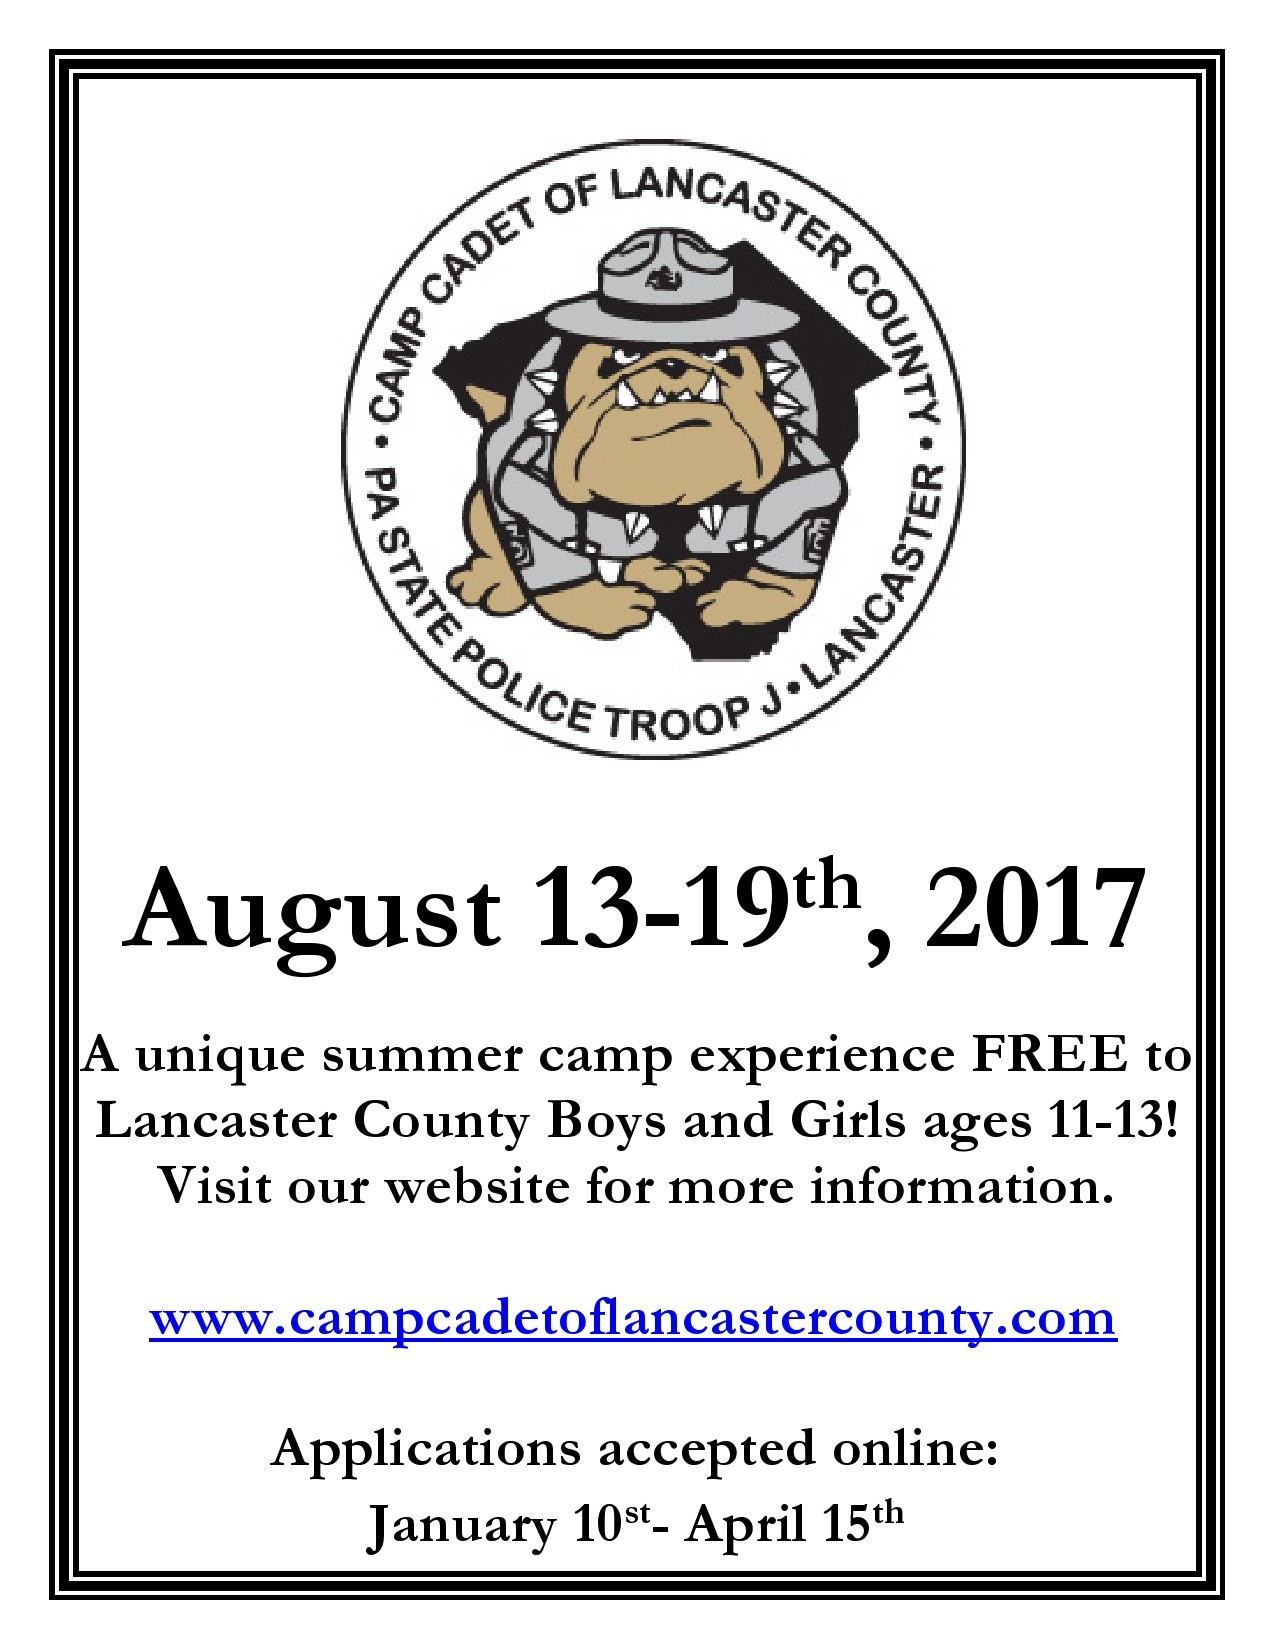 Free summer camp flyer 13